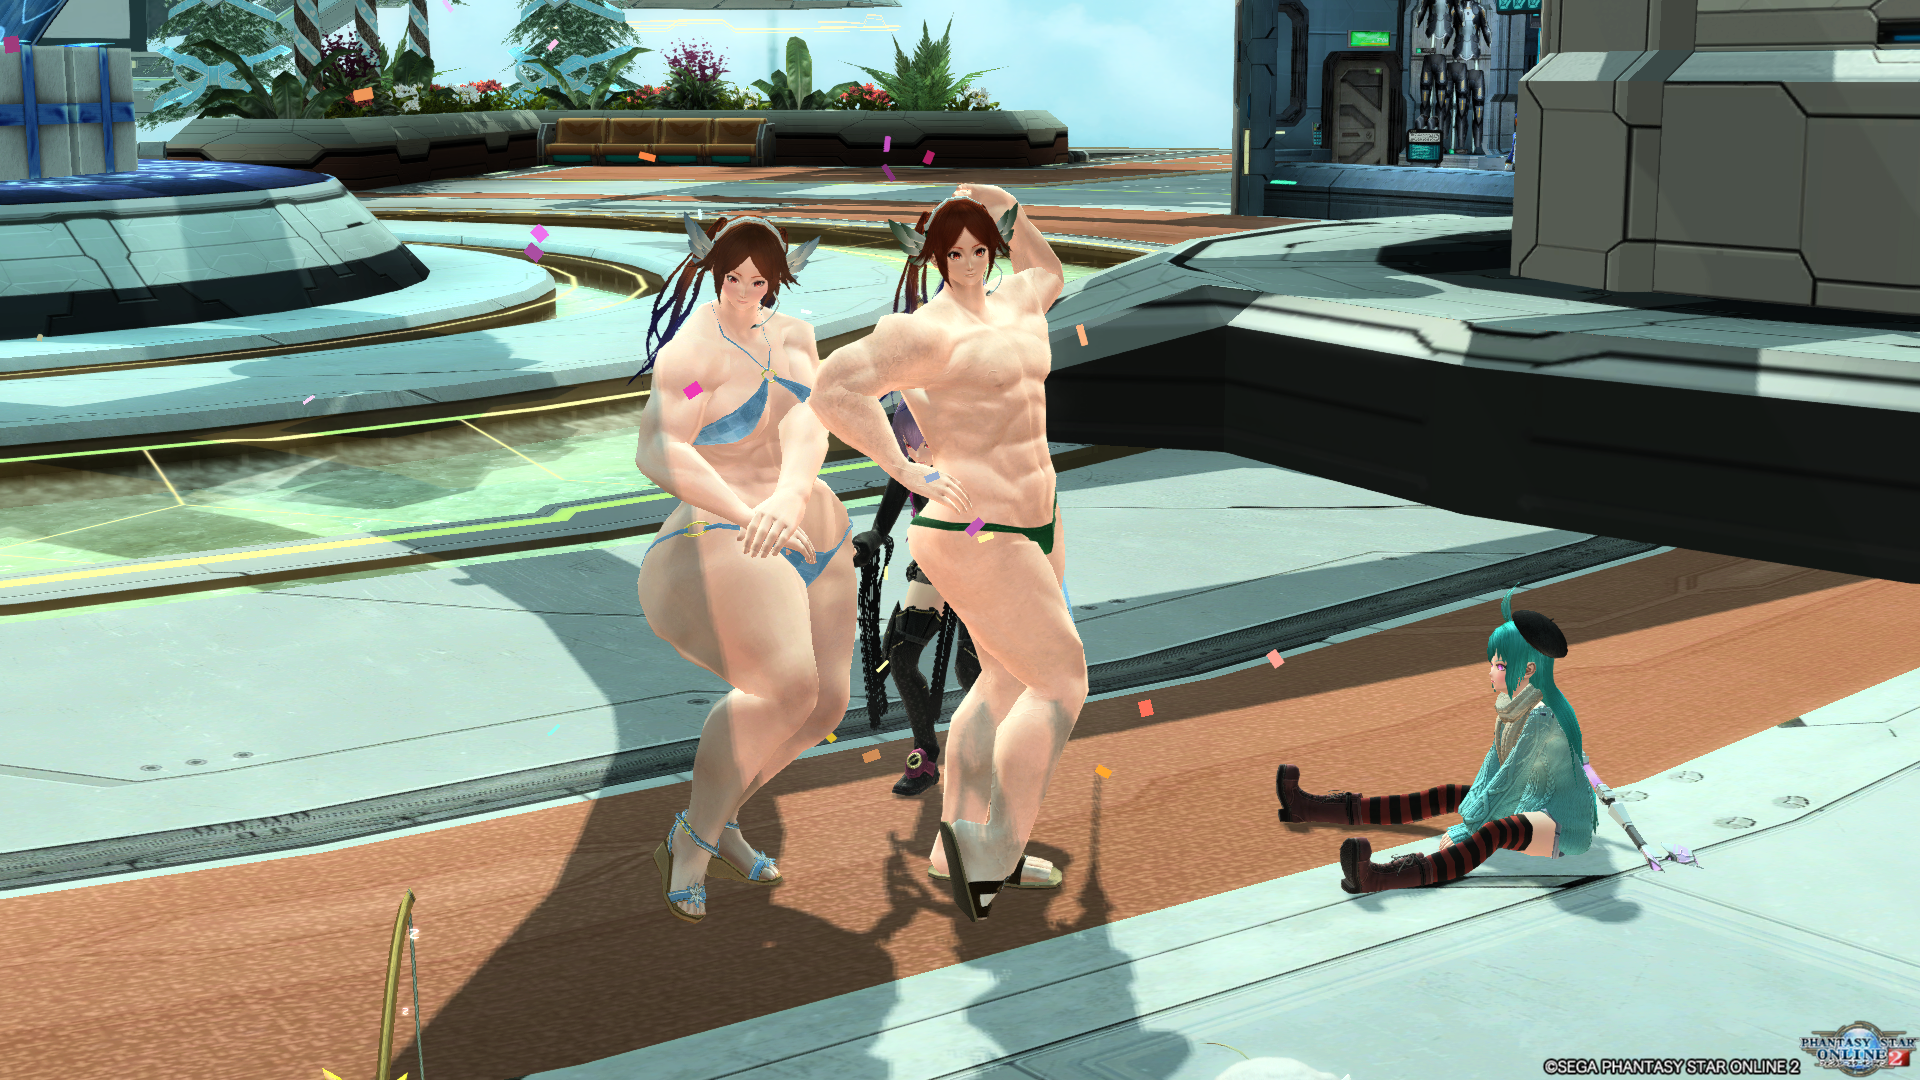 pso20160312_134450_006.png